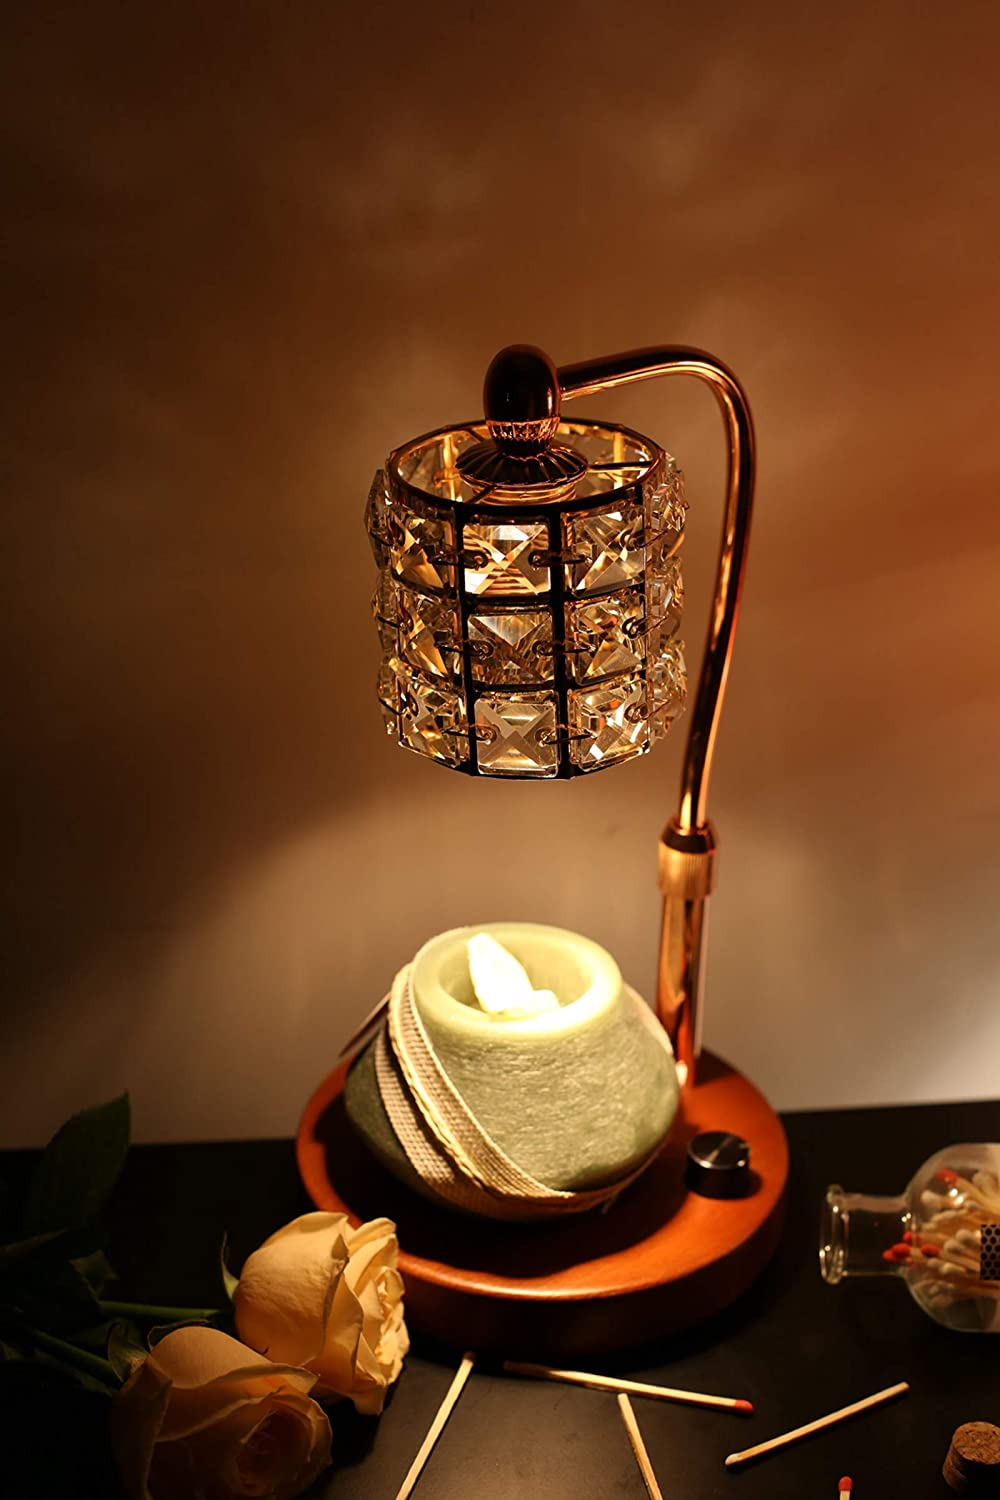 Candle Wax Lamp Creative Exquisite Simple Europe Thermal Melting Wax Warmer Lamp with Adjustable Temperature and Fragrance for Bedroom Living Room Study White